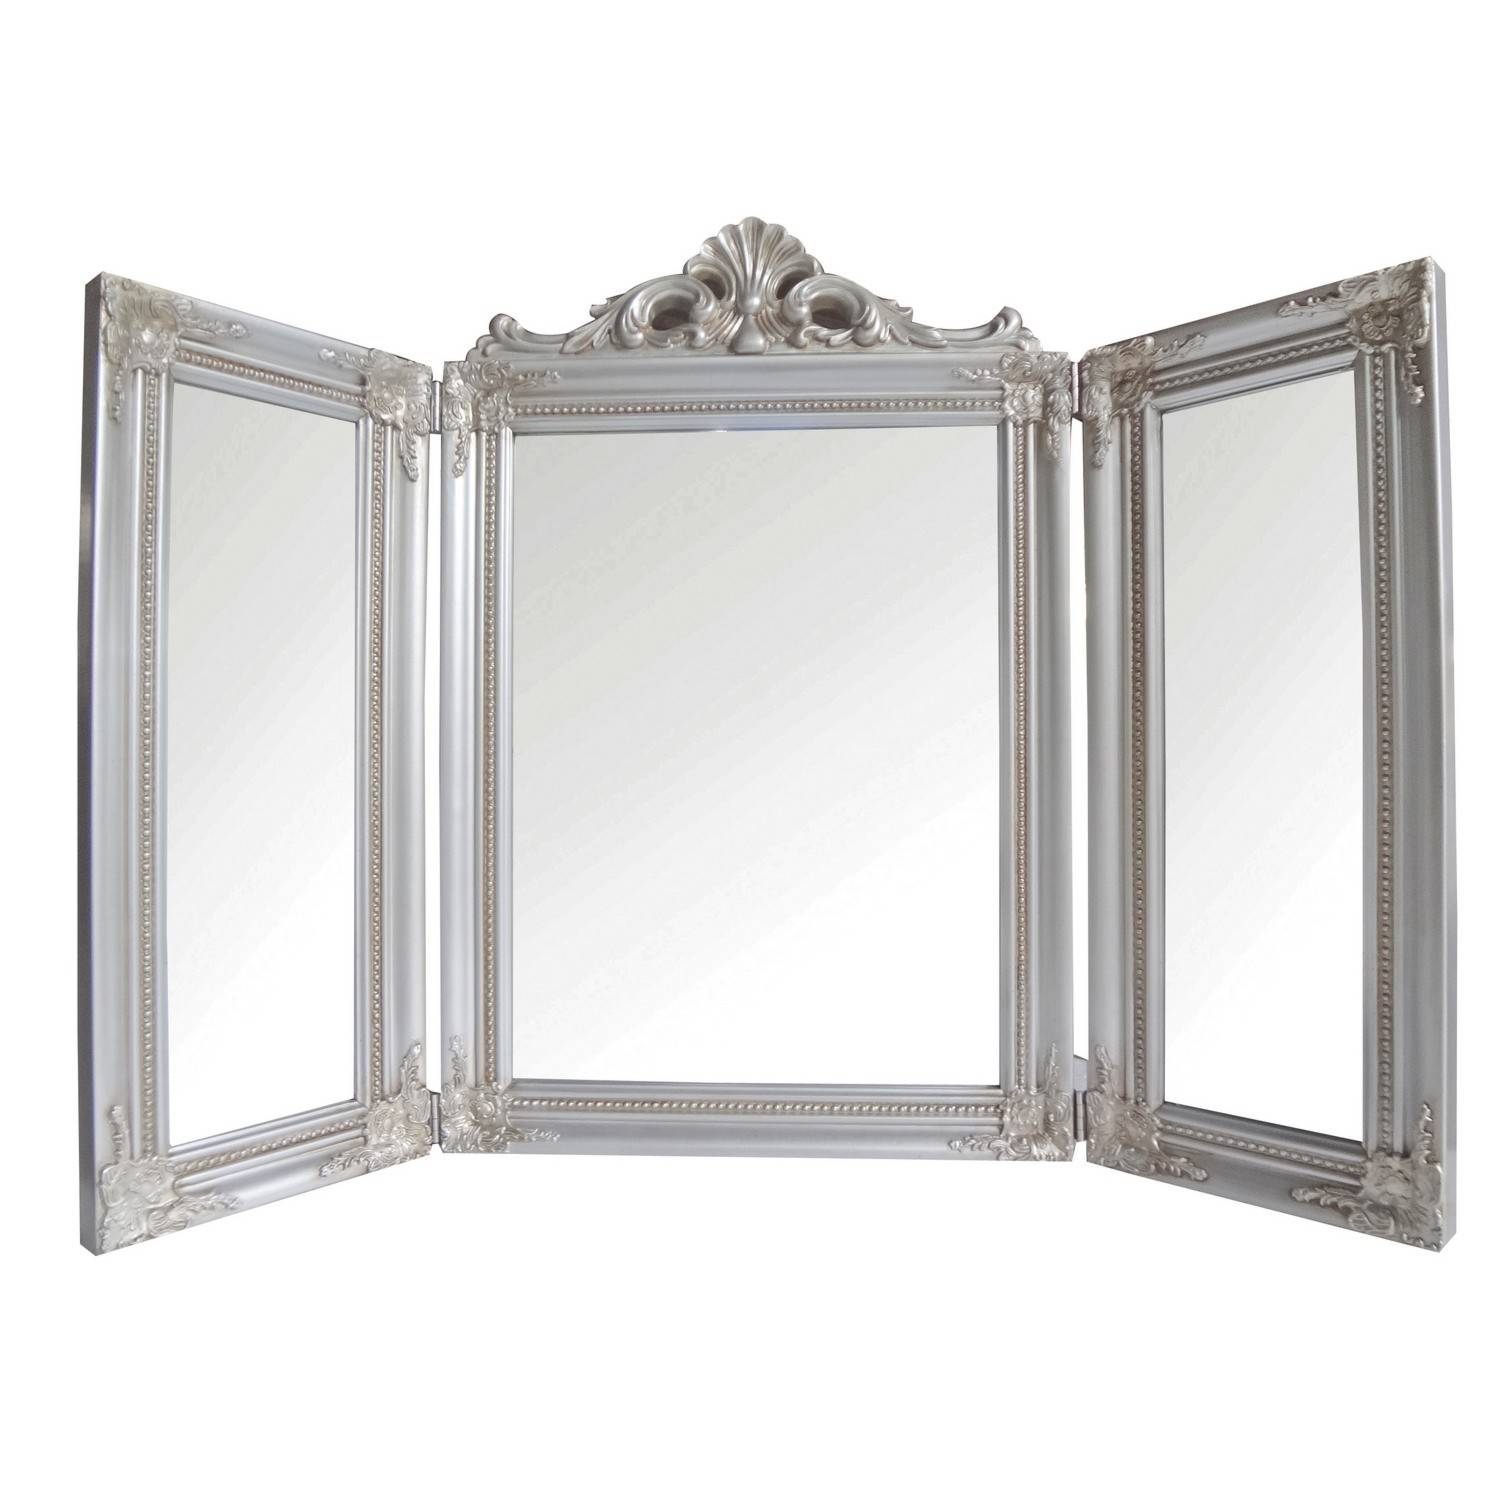 Dressing Table Mirror Share On To Decorating Ideas intended for Dressing Table Mirrors (Image 7 of 25)